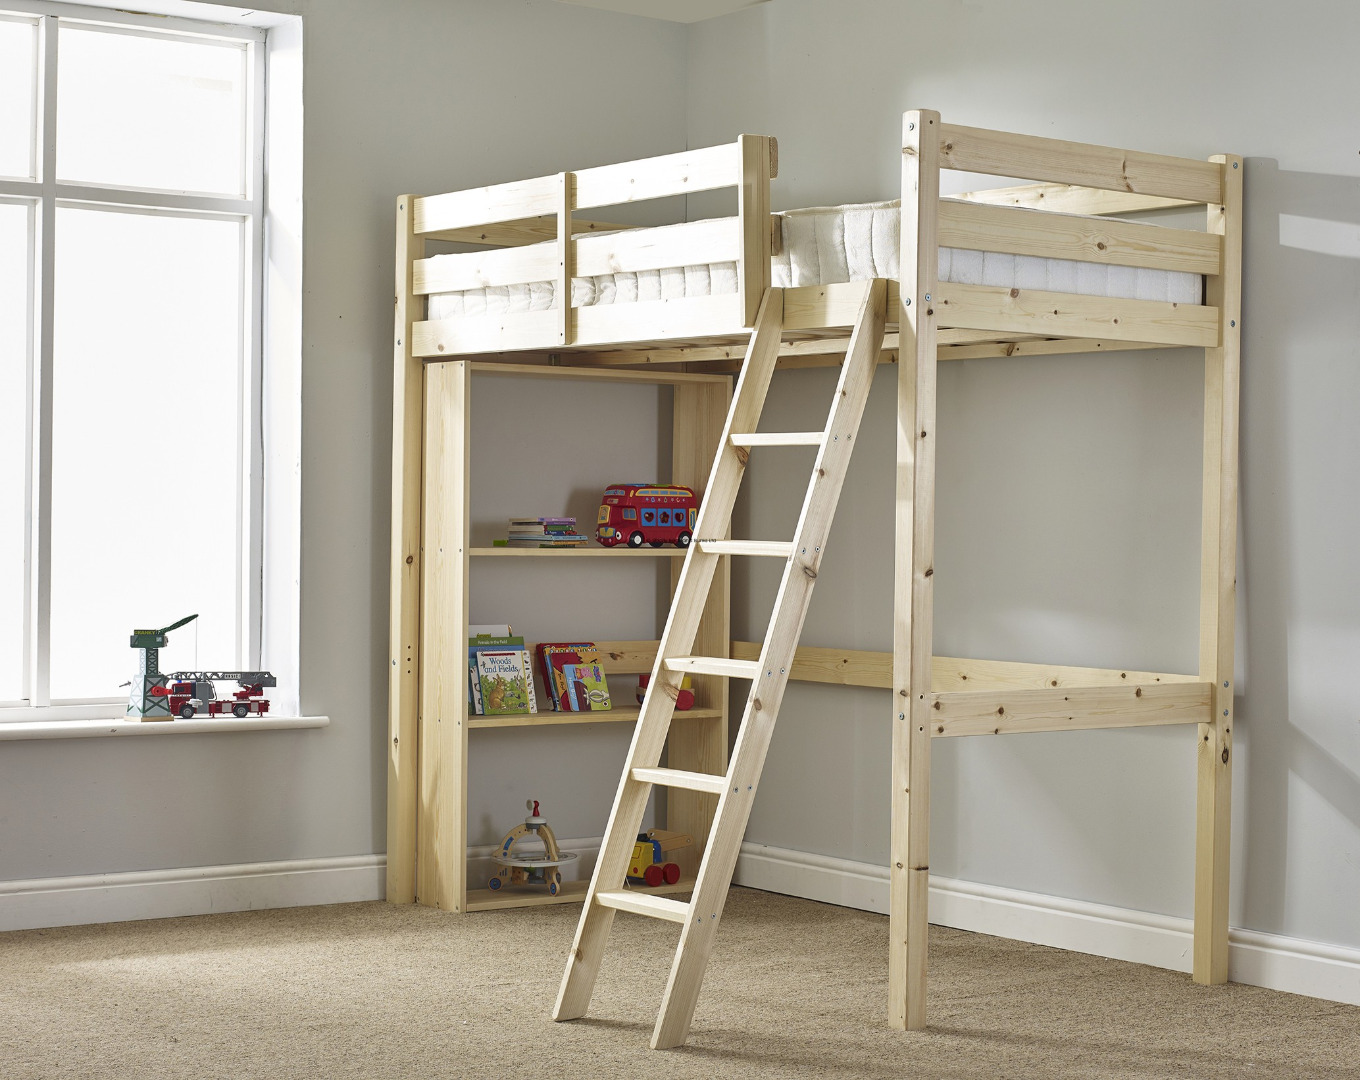 Celeste 3ft Single HEAVY DUTY HIGH SLEEPER Bunk Bed ( WITH BOOKCASE)